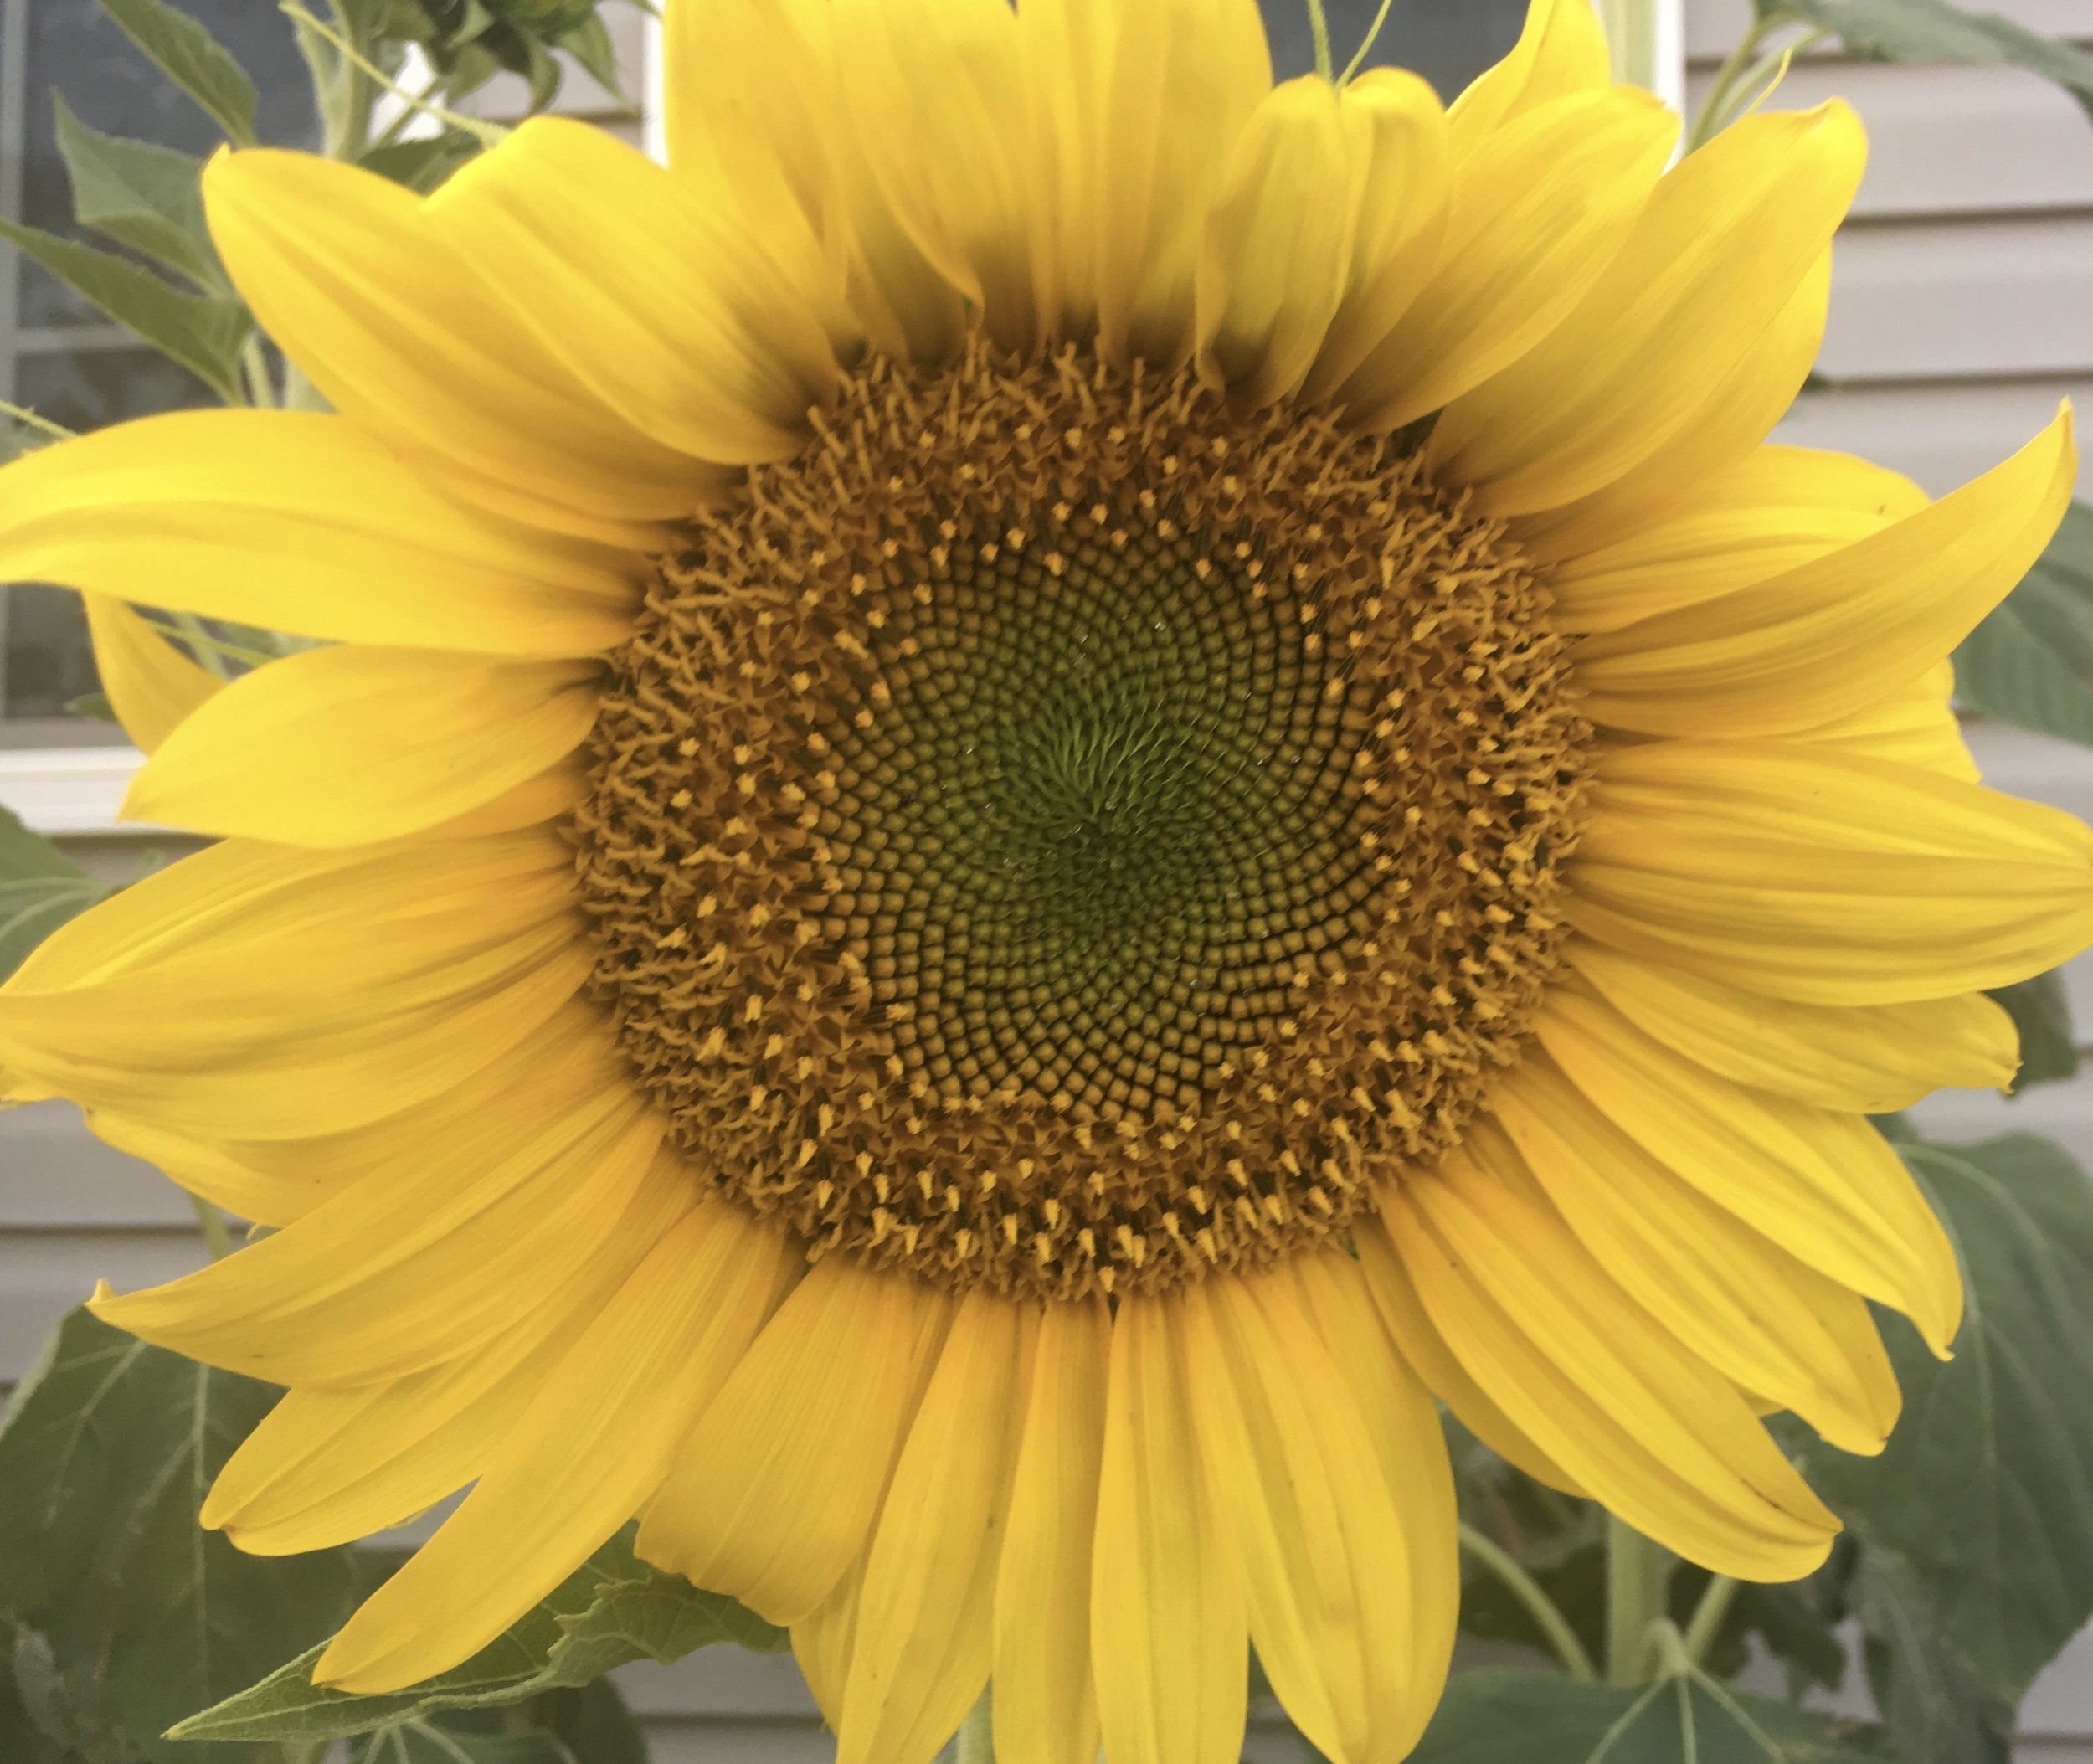 One of my sunflowers I grew this year.